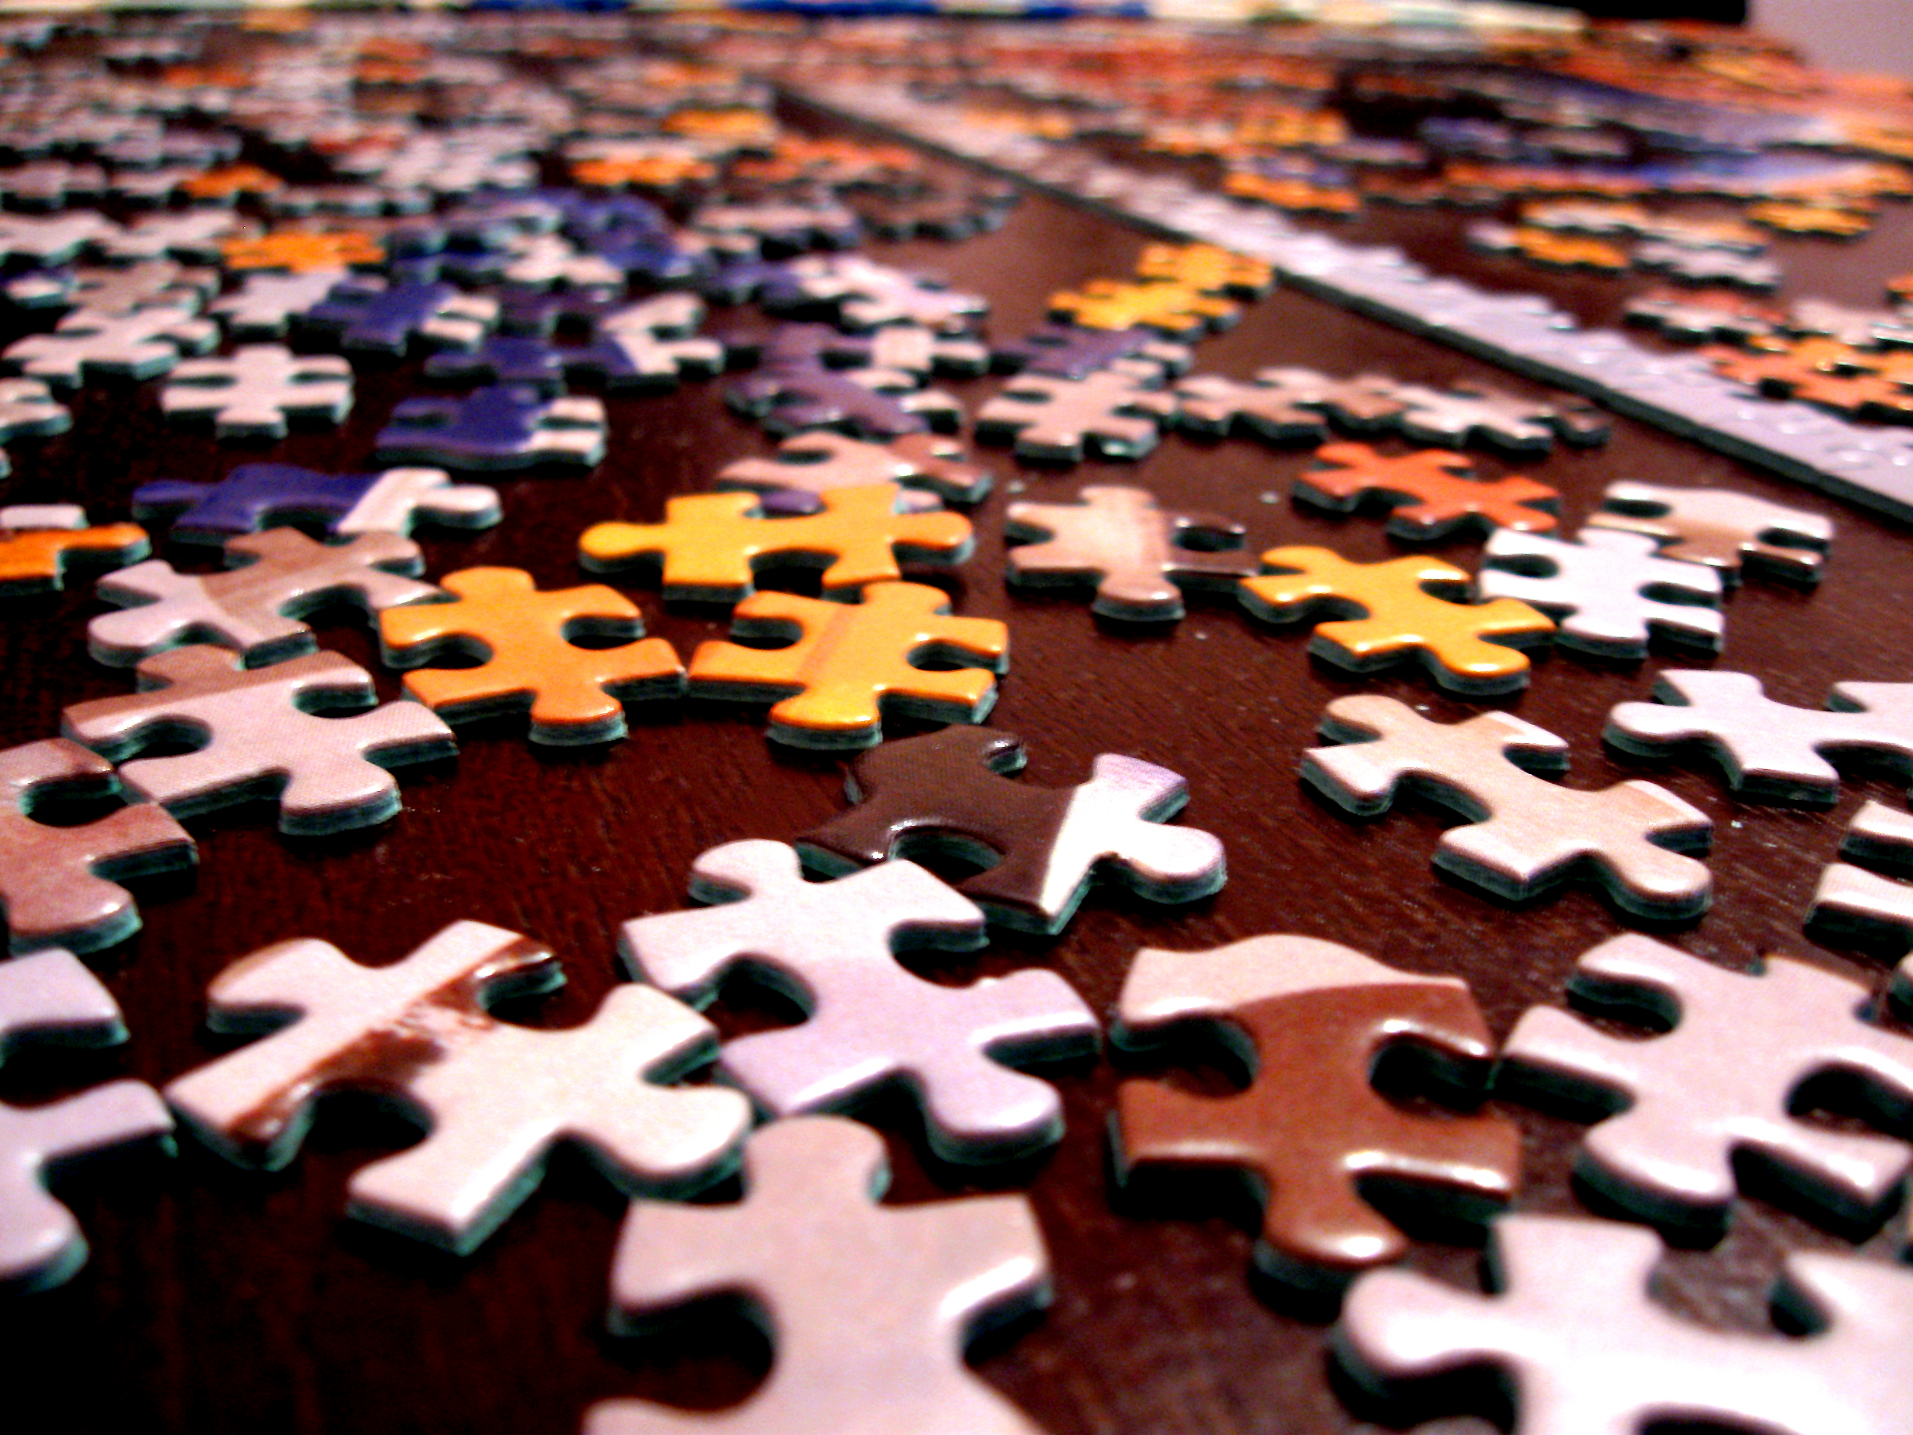 The Market is more of a puzzle going forward.